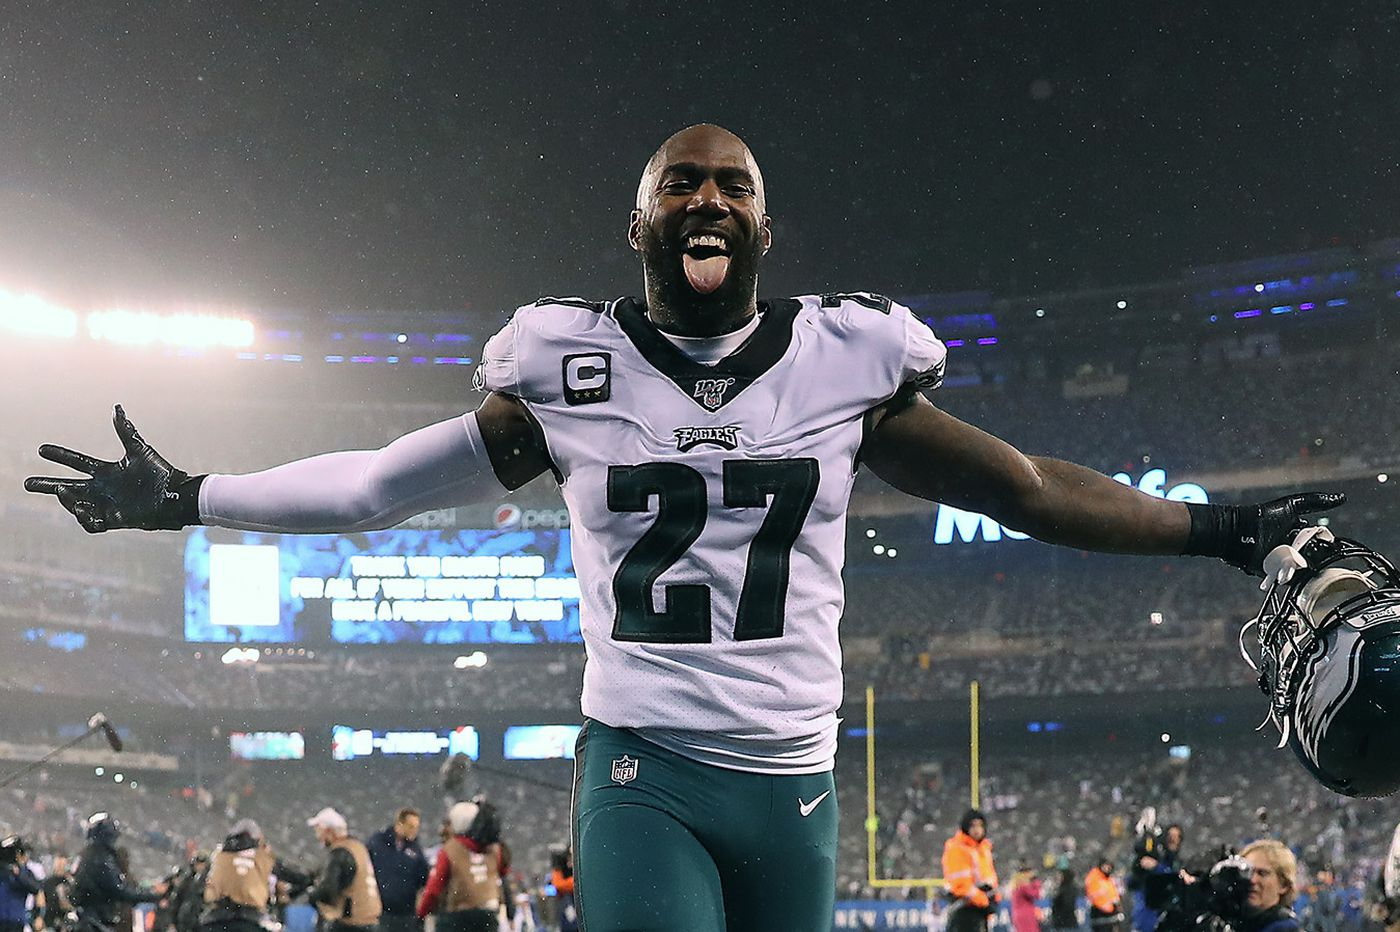 As the Eagles attempt to get younger and cheaper, Malcolm Jenkins became a casualty